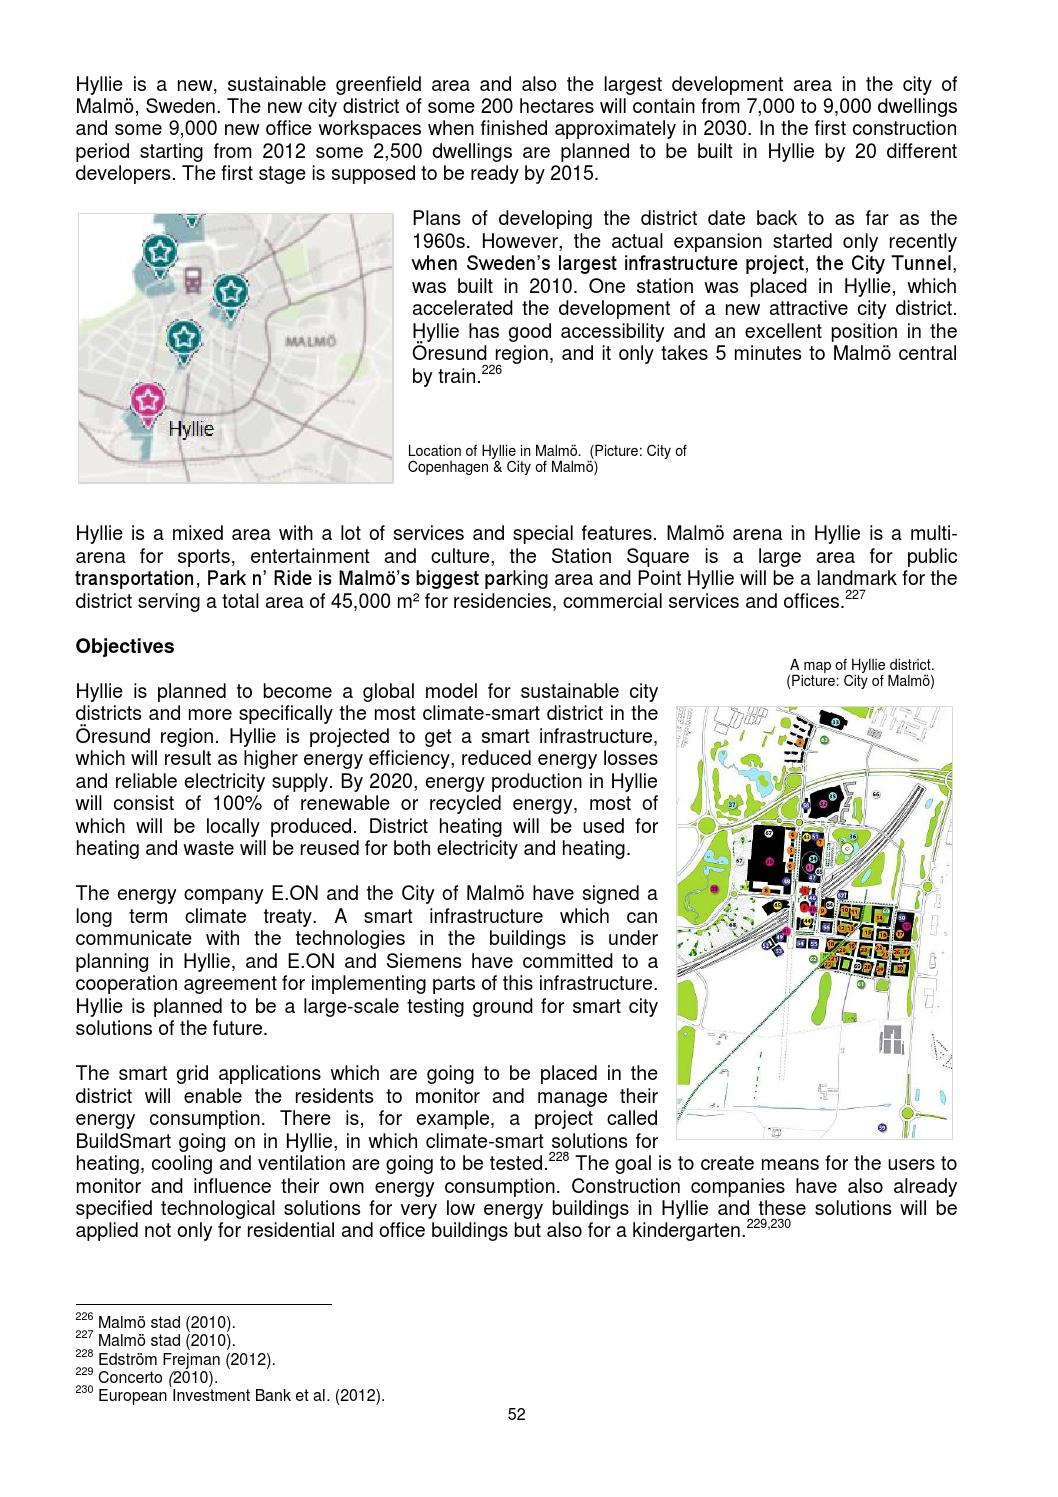 Study on Sustainable City Districts by Turun kaupunki – Åbo stad - issuu